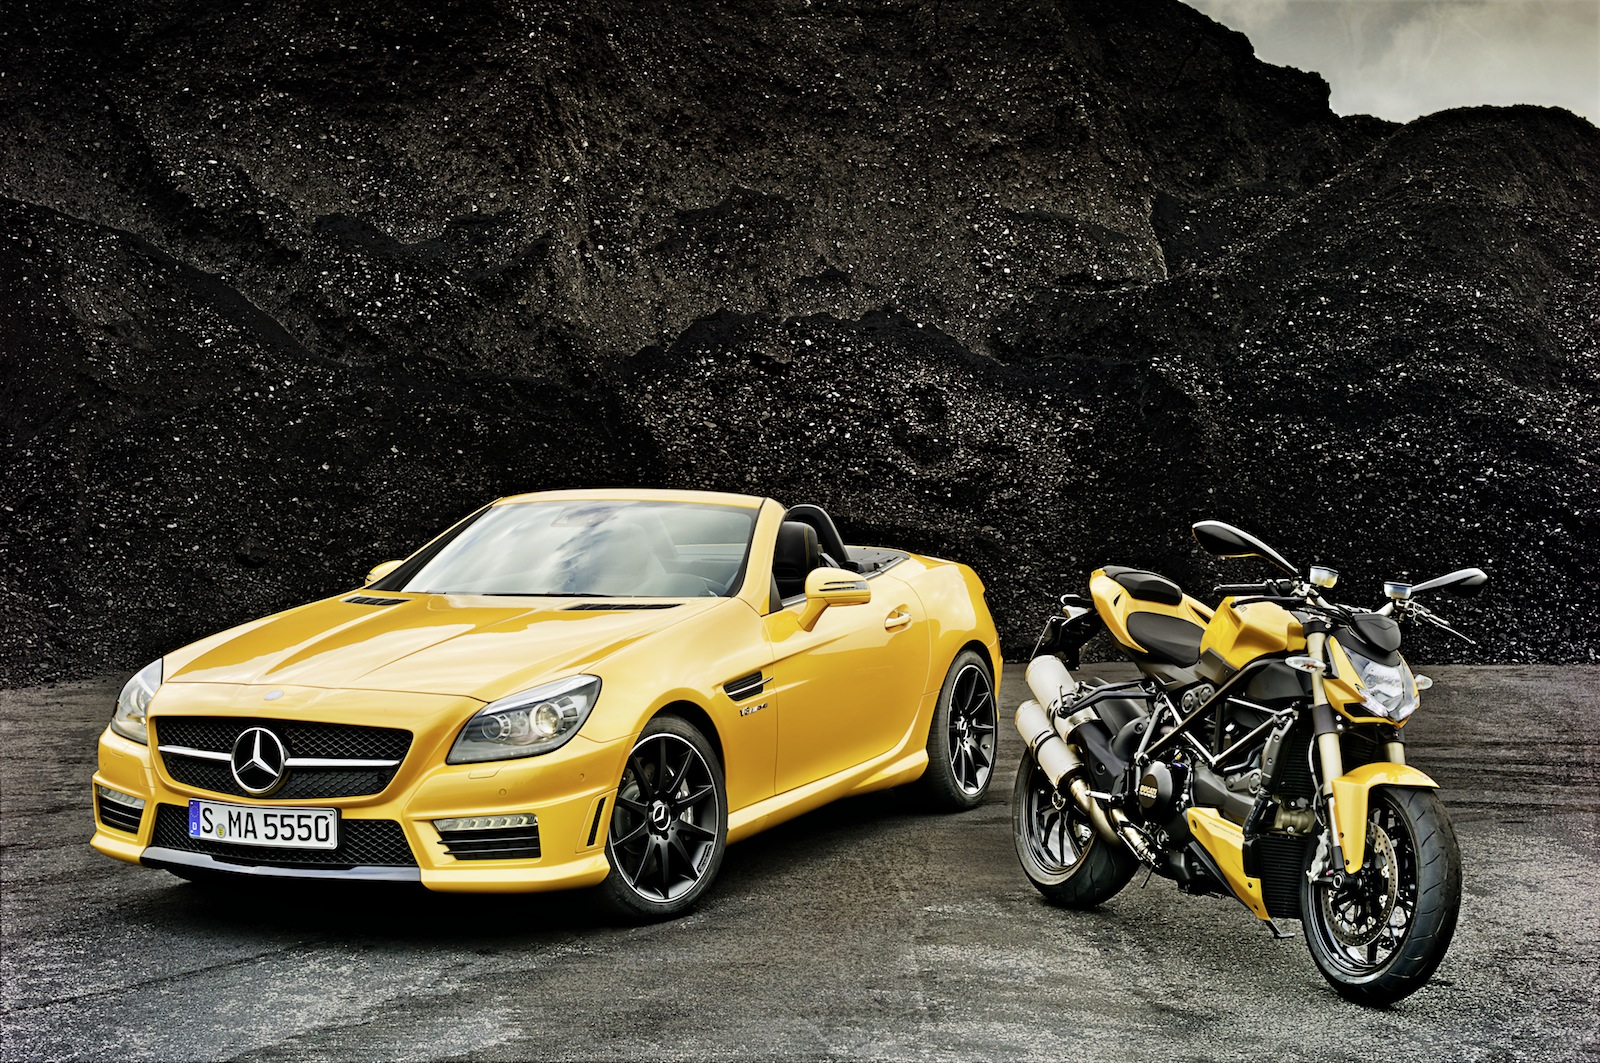 2012 mercedes slk 55 amg streetfighter yellow review top speed. Black Bedroom Furniture Sets. Home Design Ideas